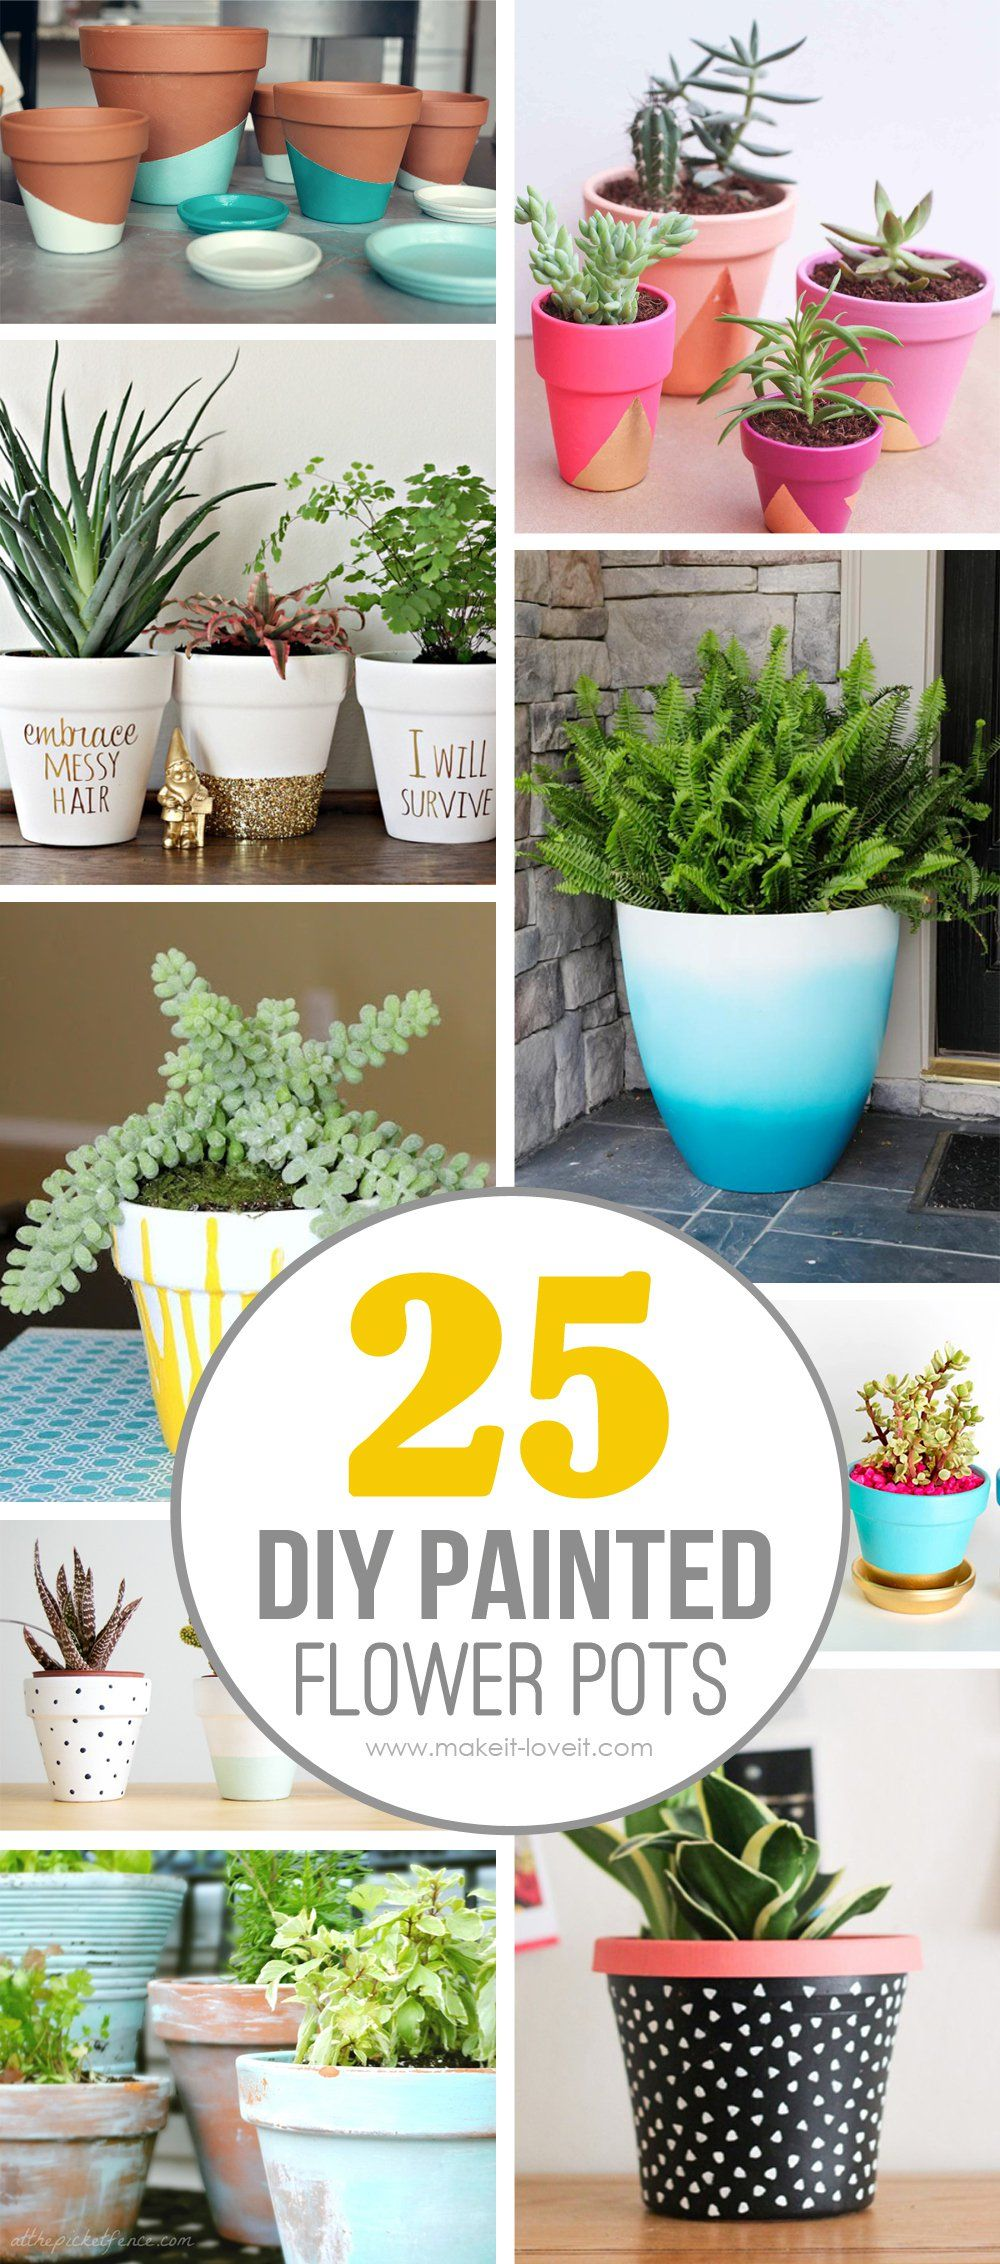 pots painted pots decorated flower pots garden pots garden ideas pot